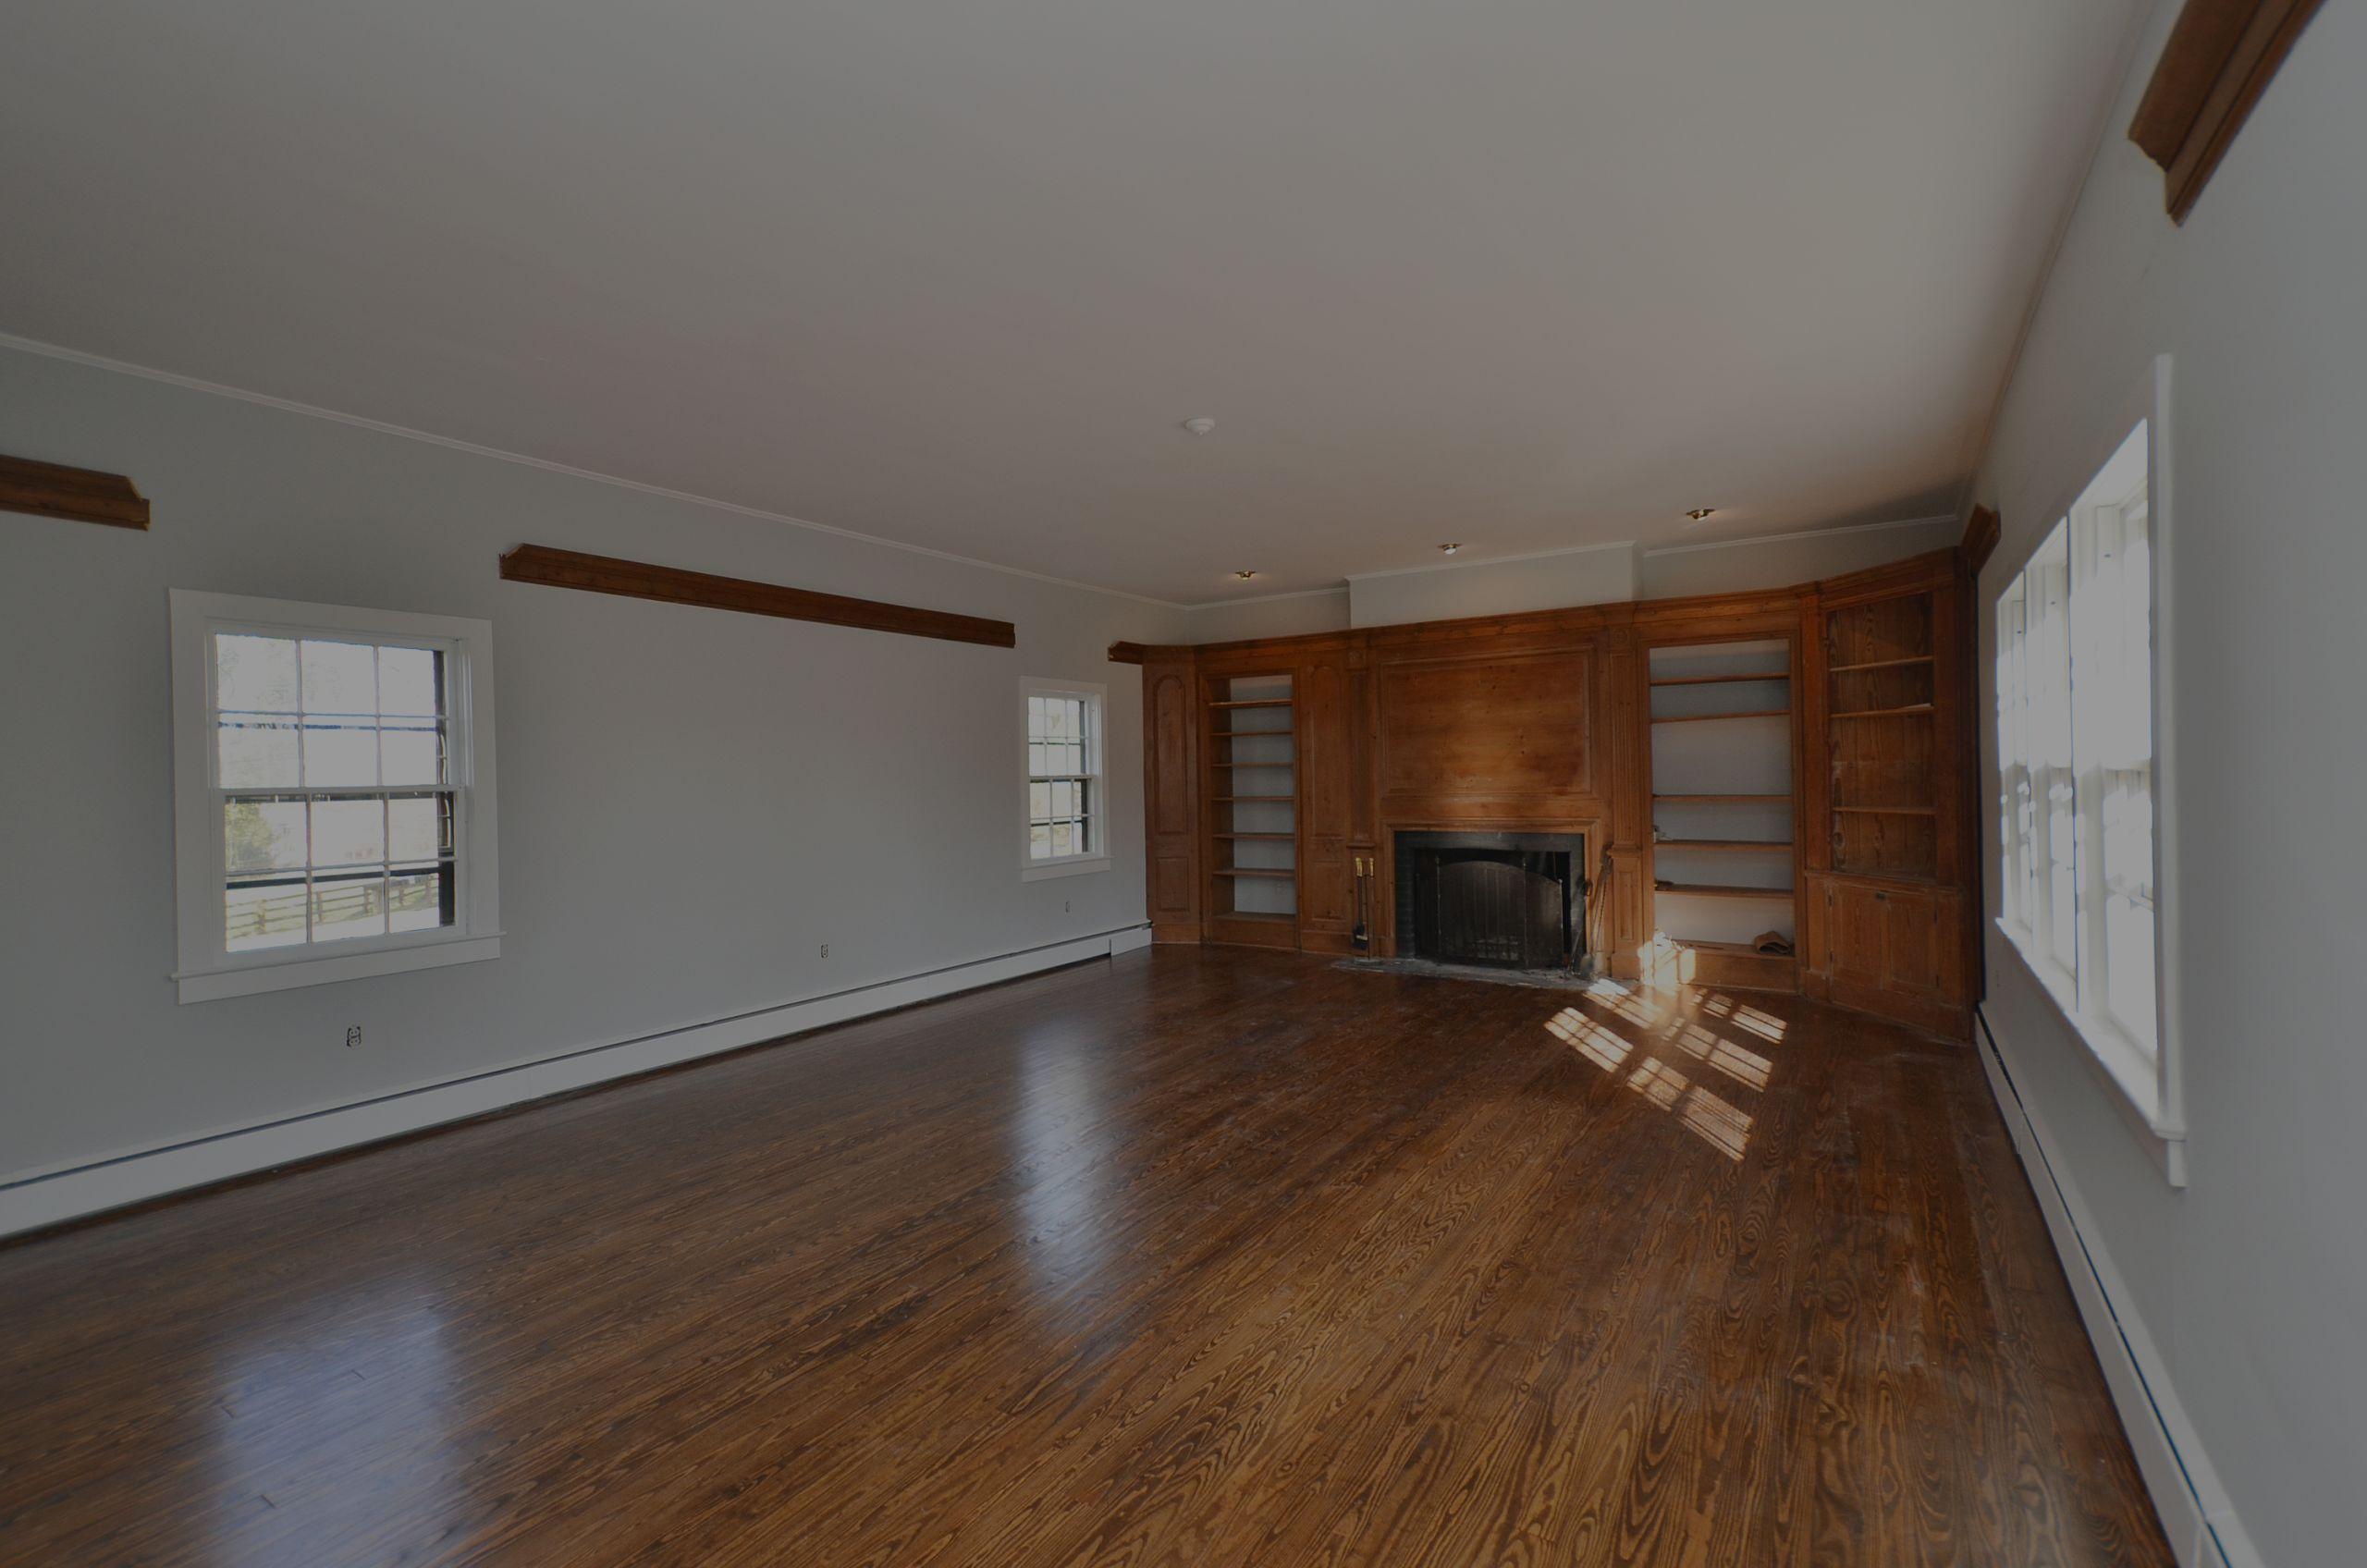 Expert Home Staging Tips to Sell Your Home Fast